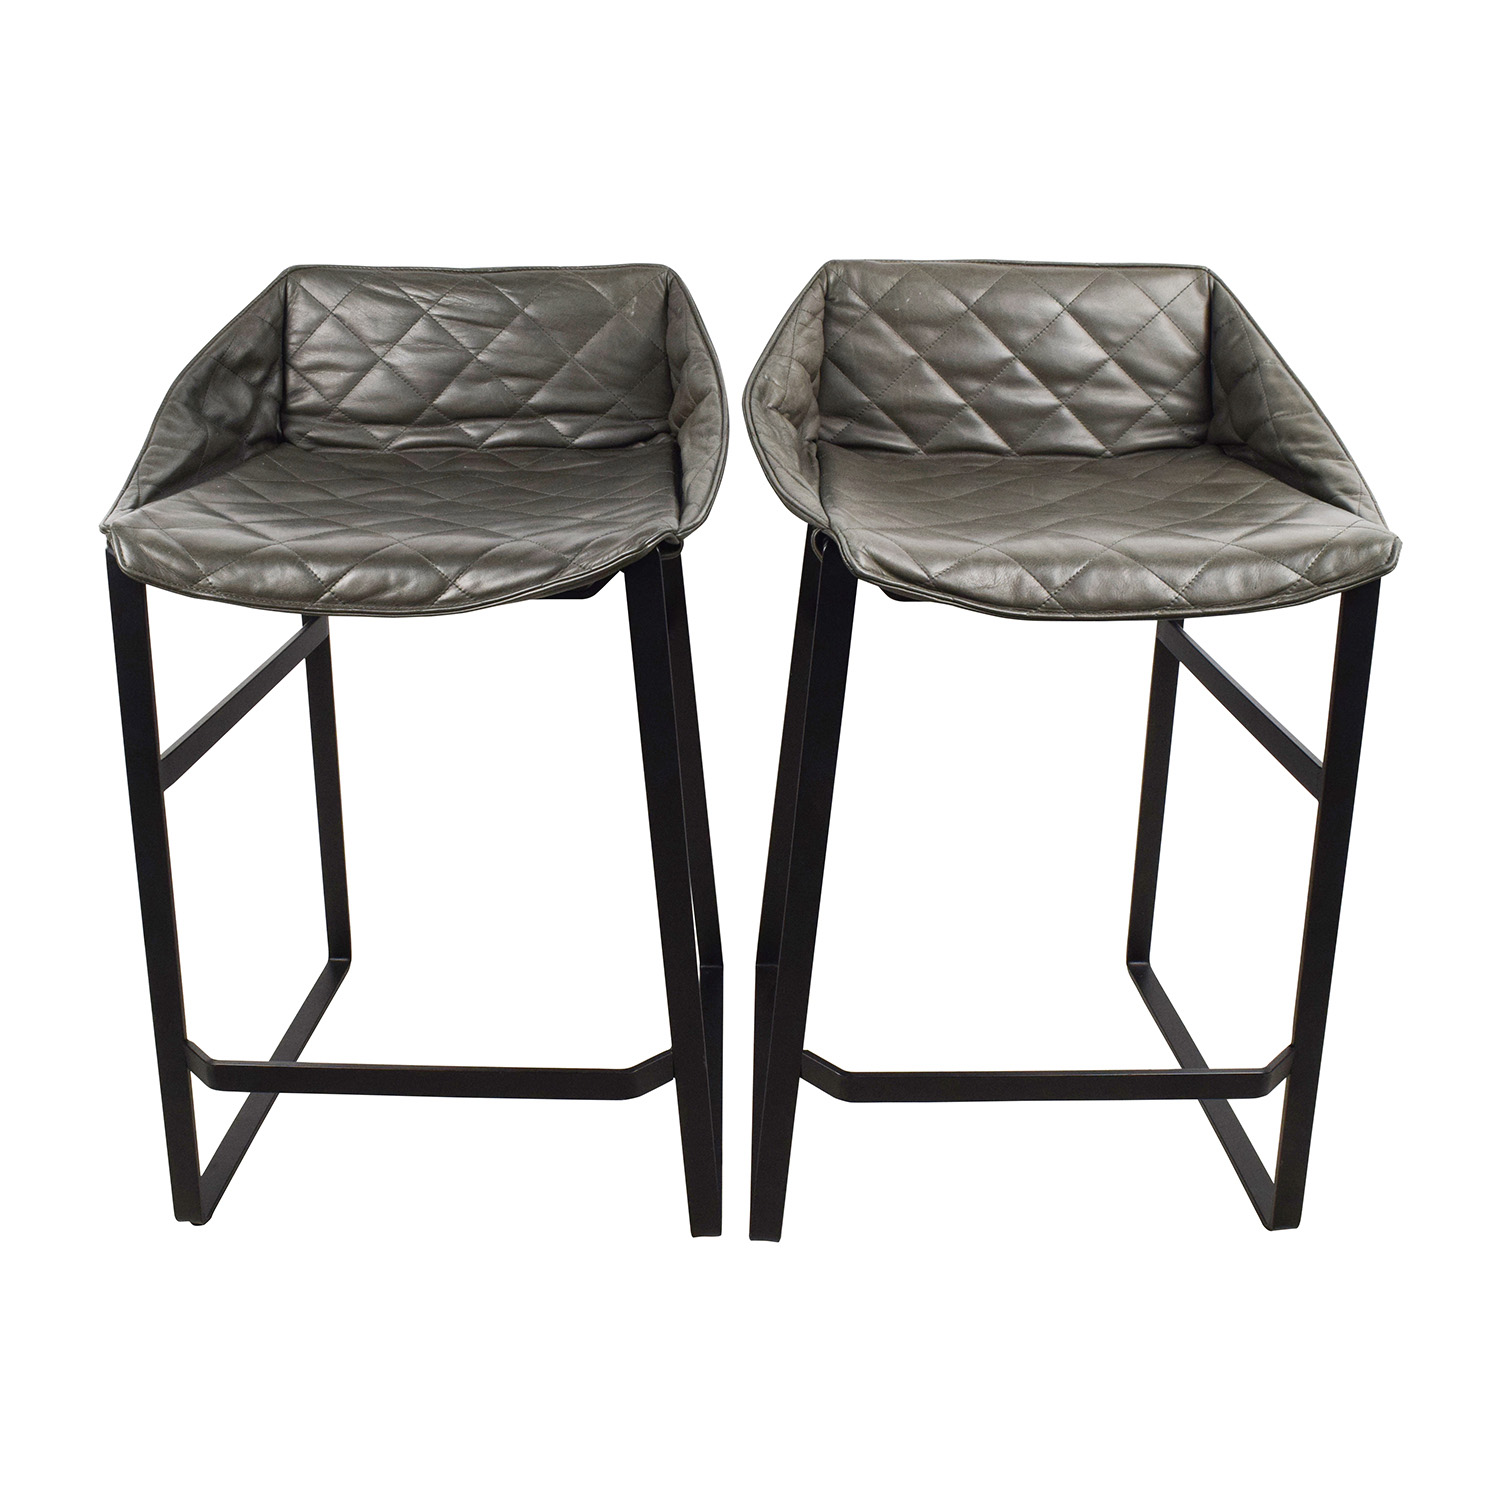 buy Klaas Klaas Leather Kitchen Stool Set online